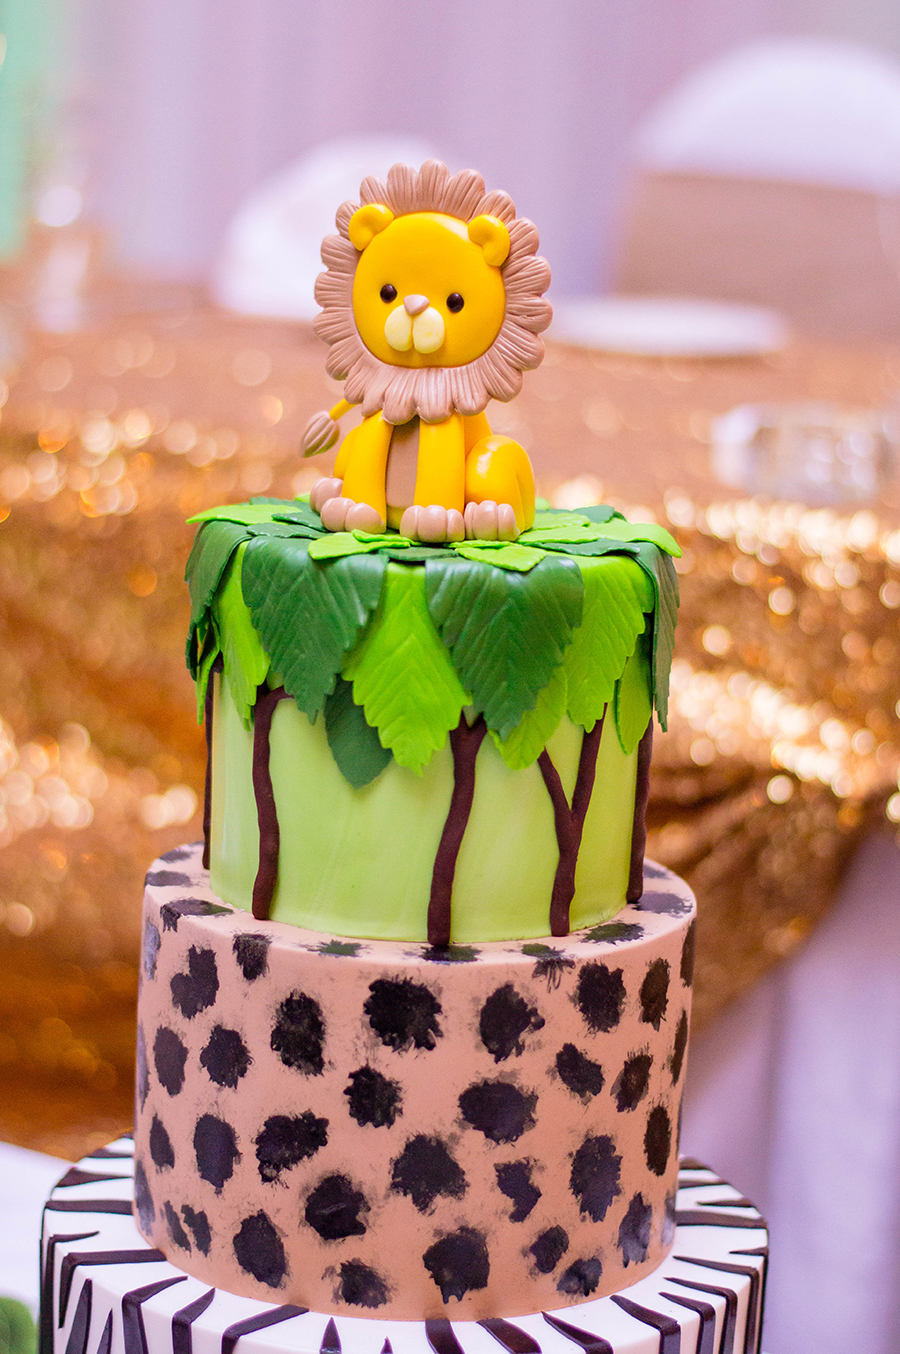 Partnering up with Party Expert to create the most jungle-worthy sweet table... ever!